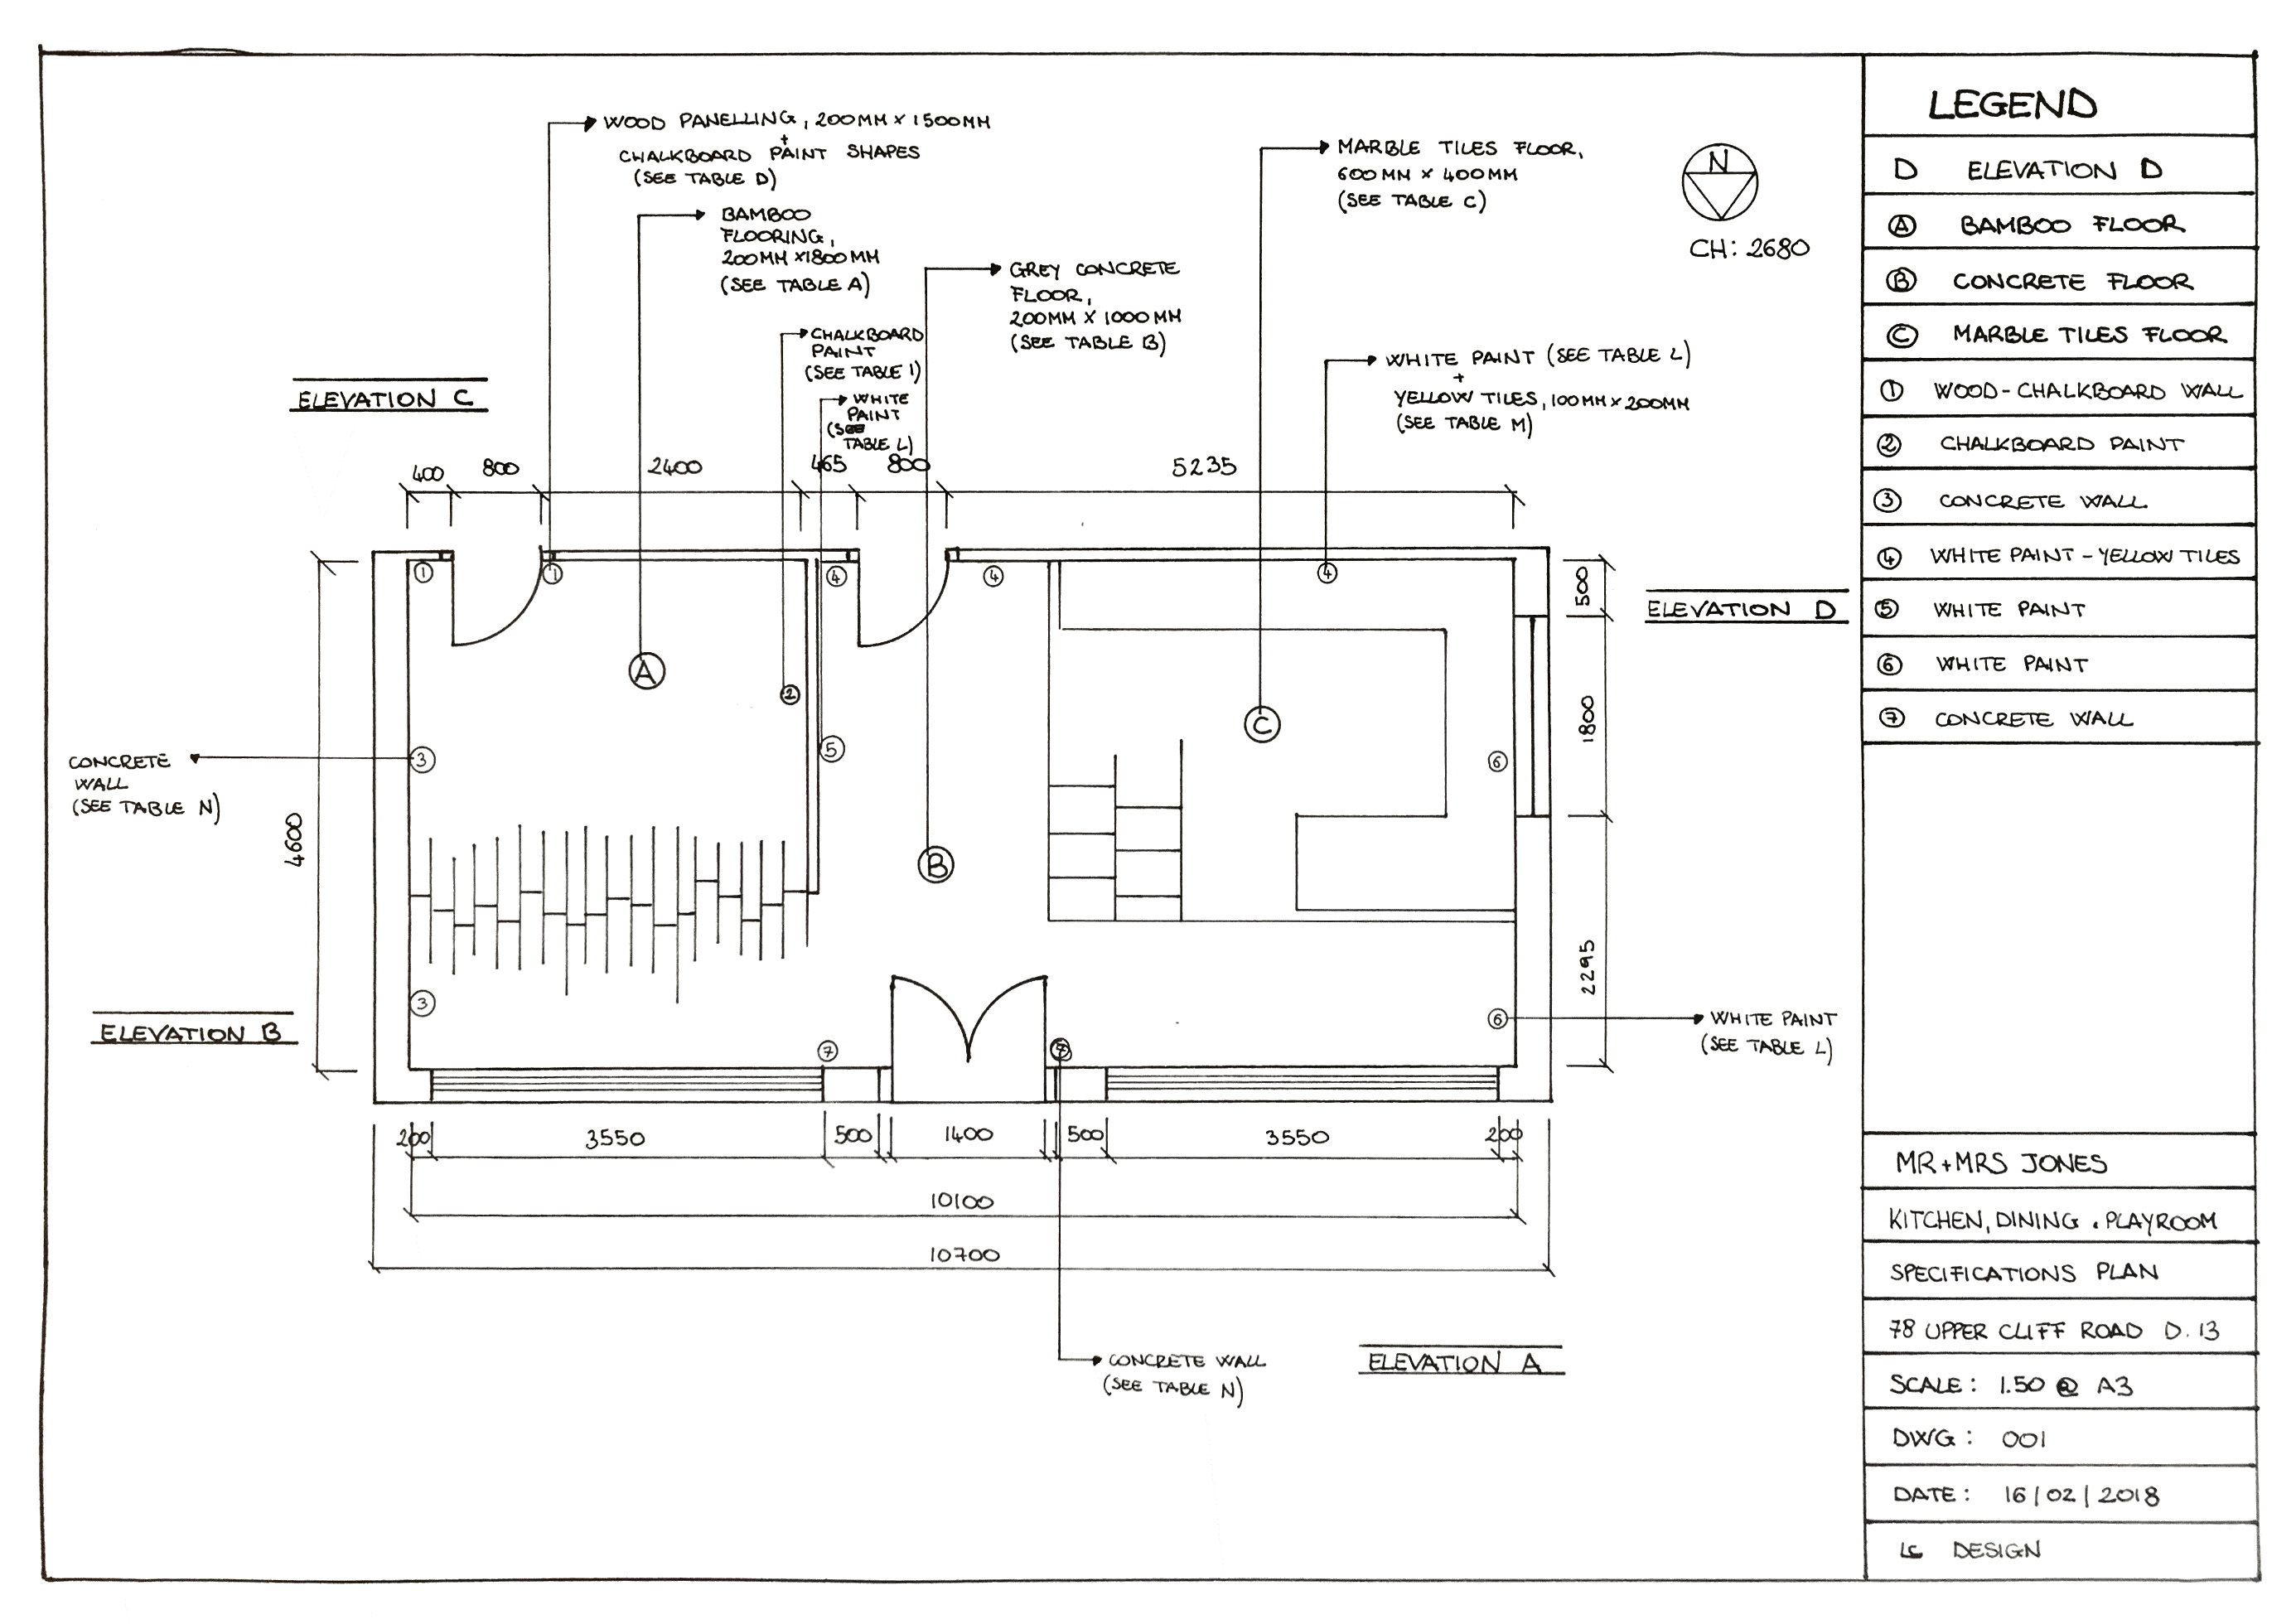 Specification plan technical drawings interior design architecture materials also rh in pinterest